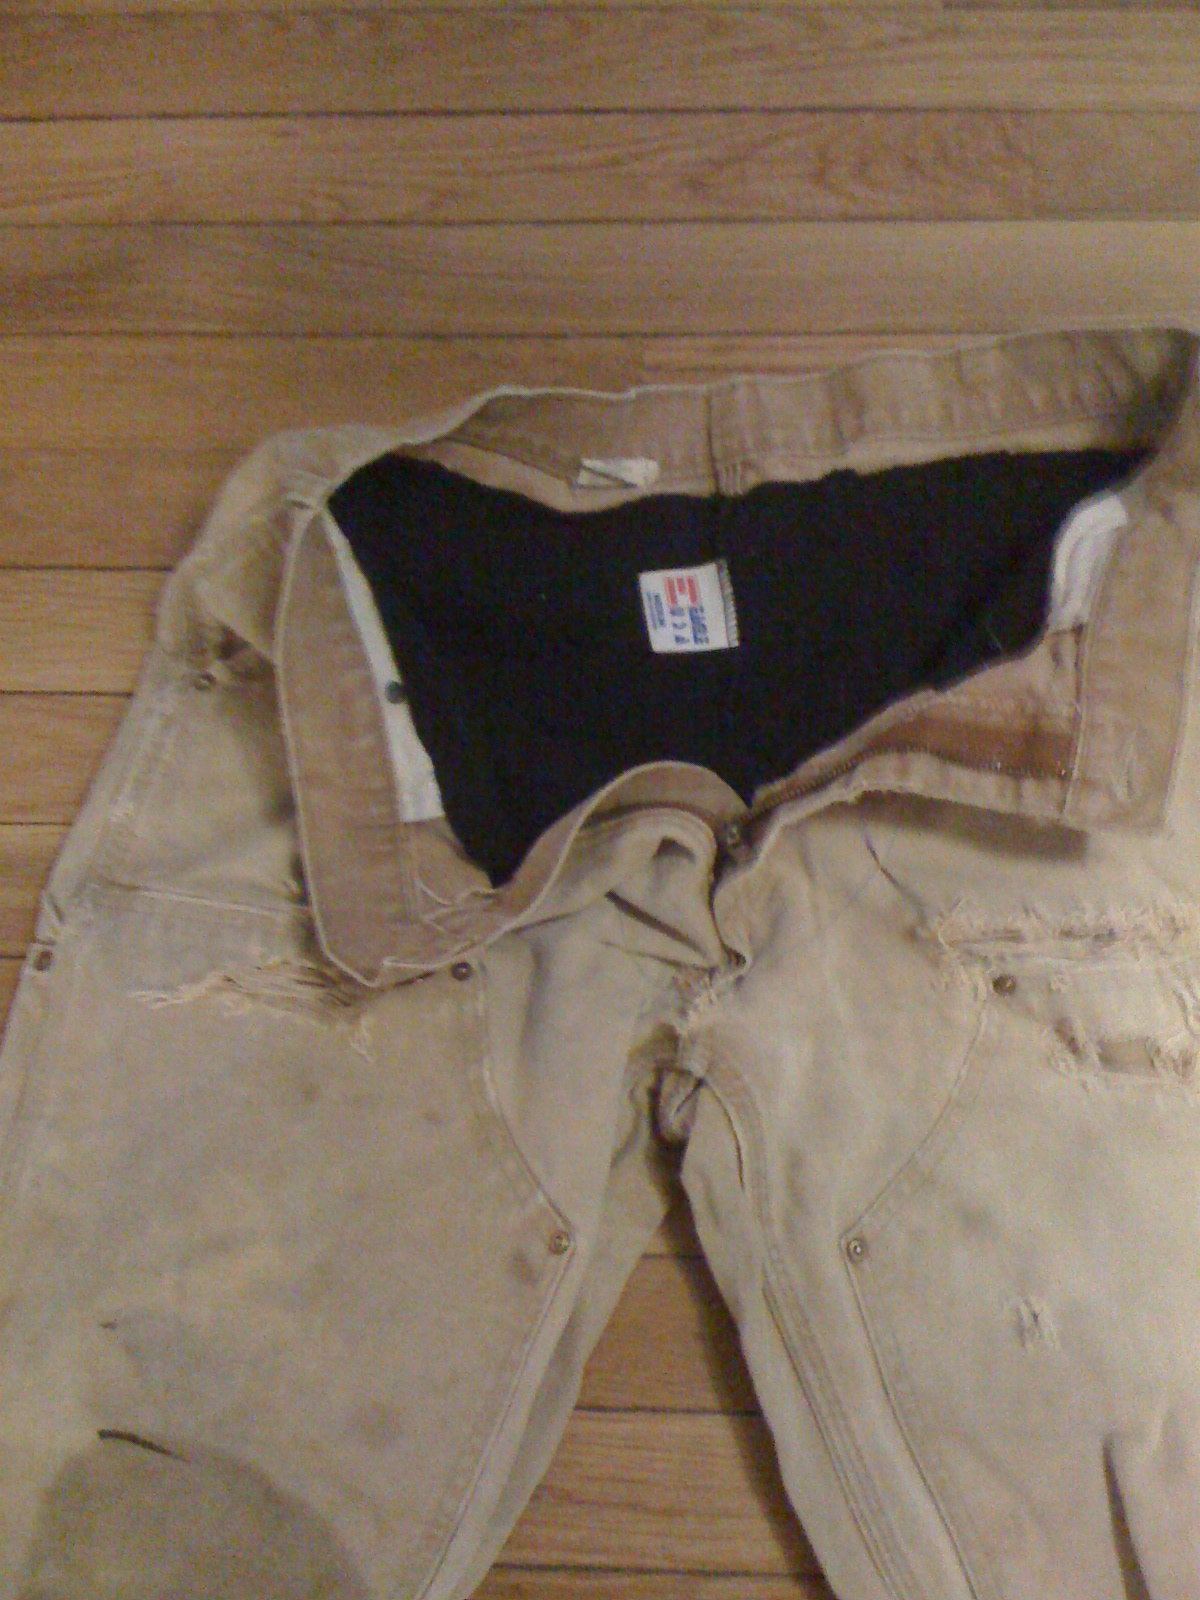 Insulated work pants